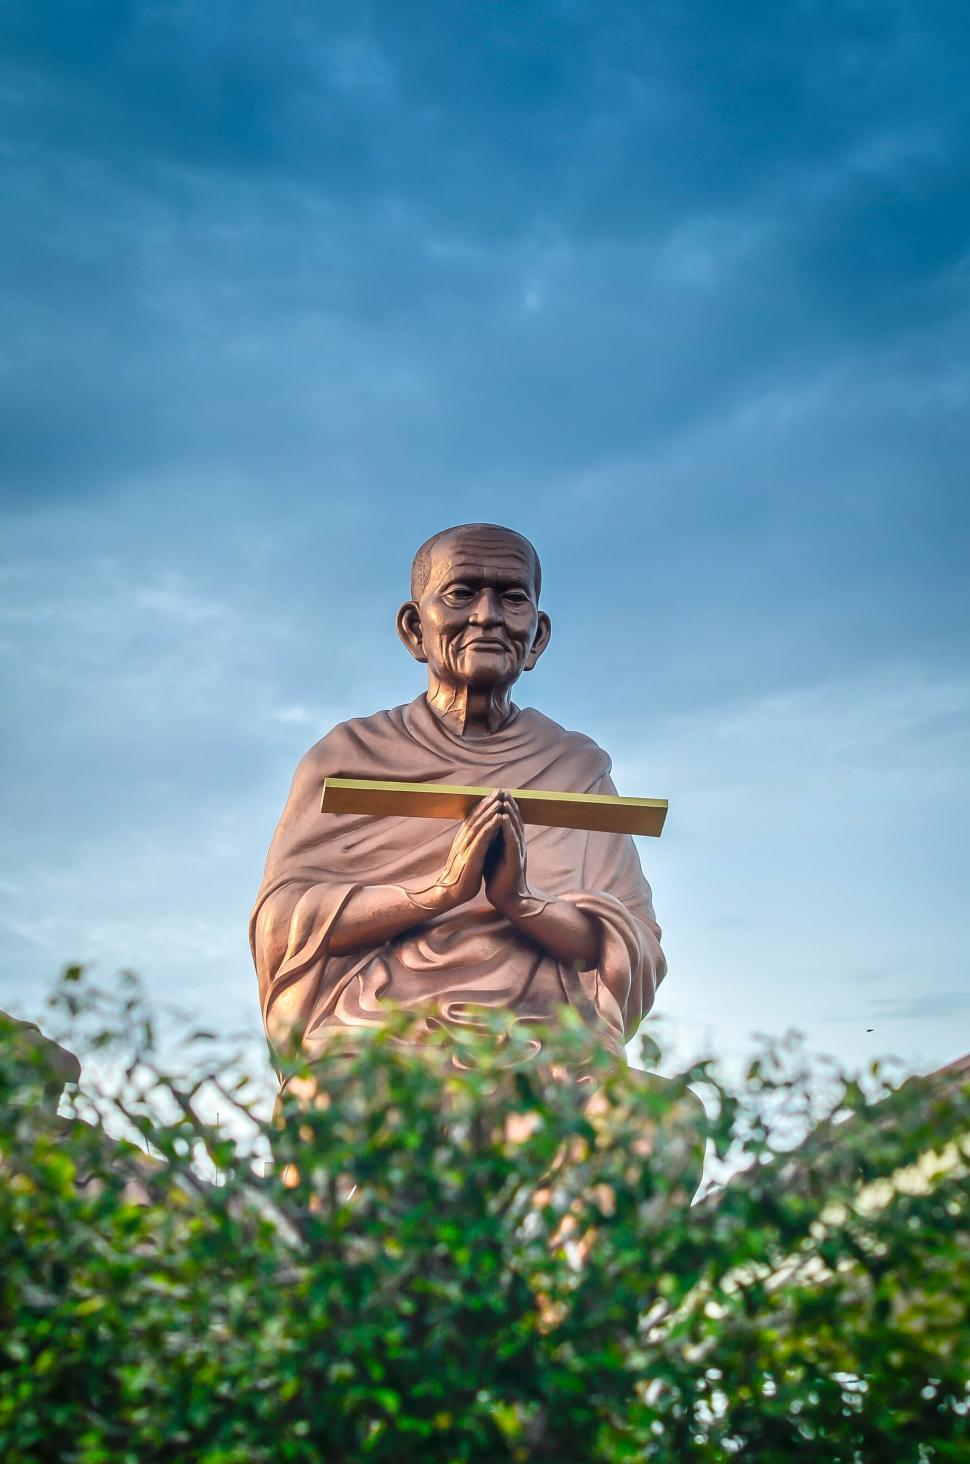 Download Free Stock HD Photo of Monk in Thailand  Online